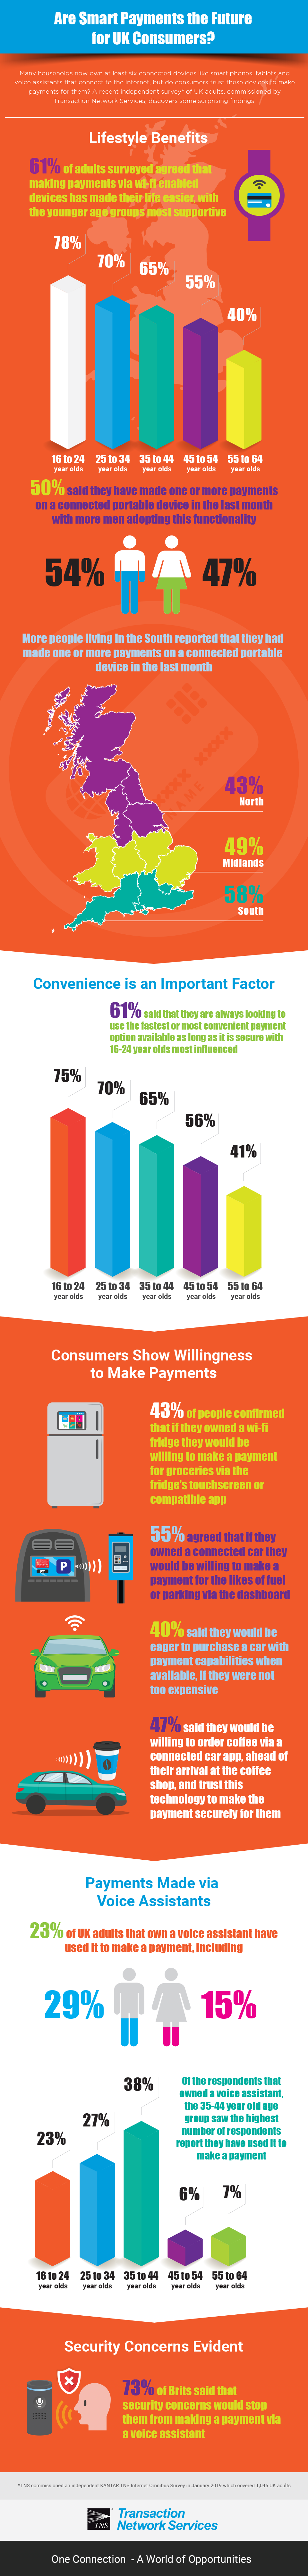 Are Smart Payments the Future for UK Consumers?